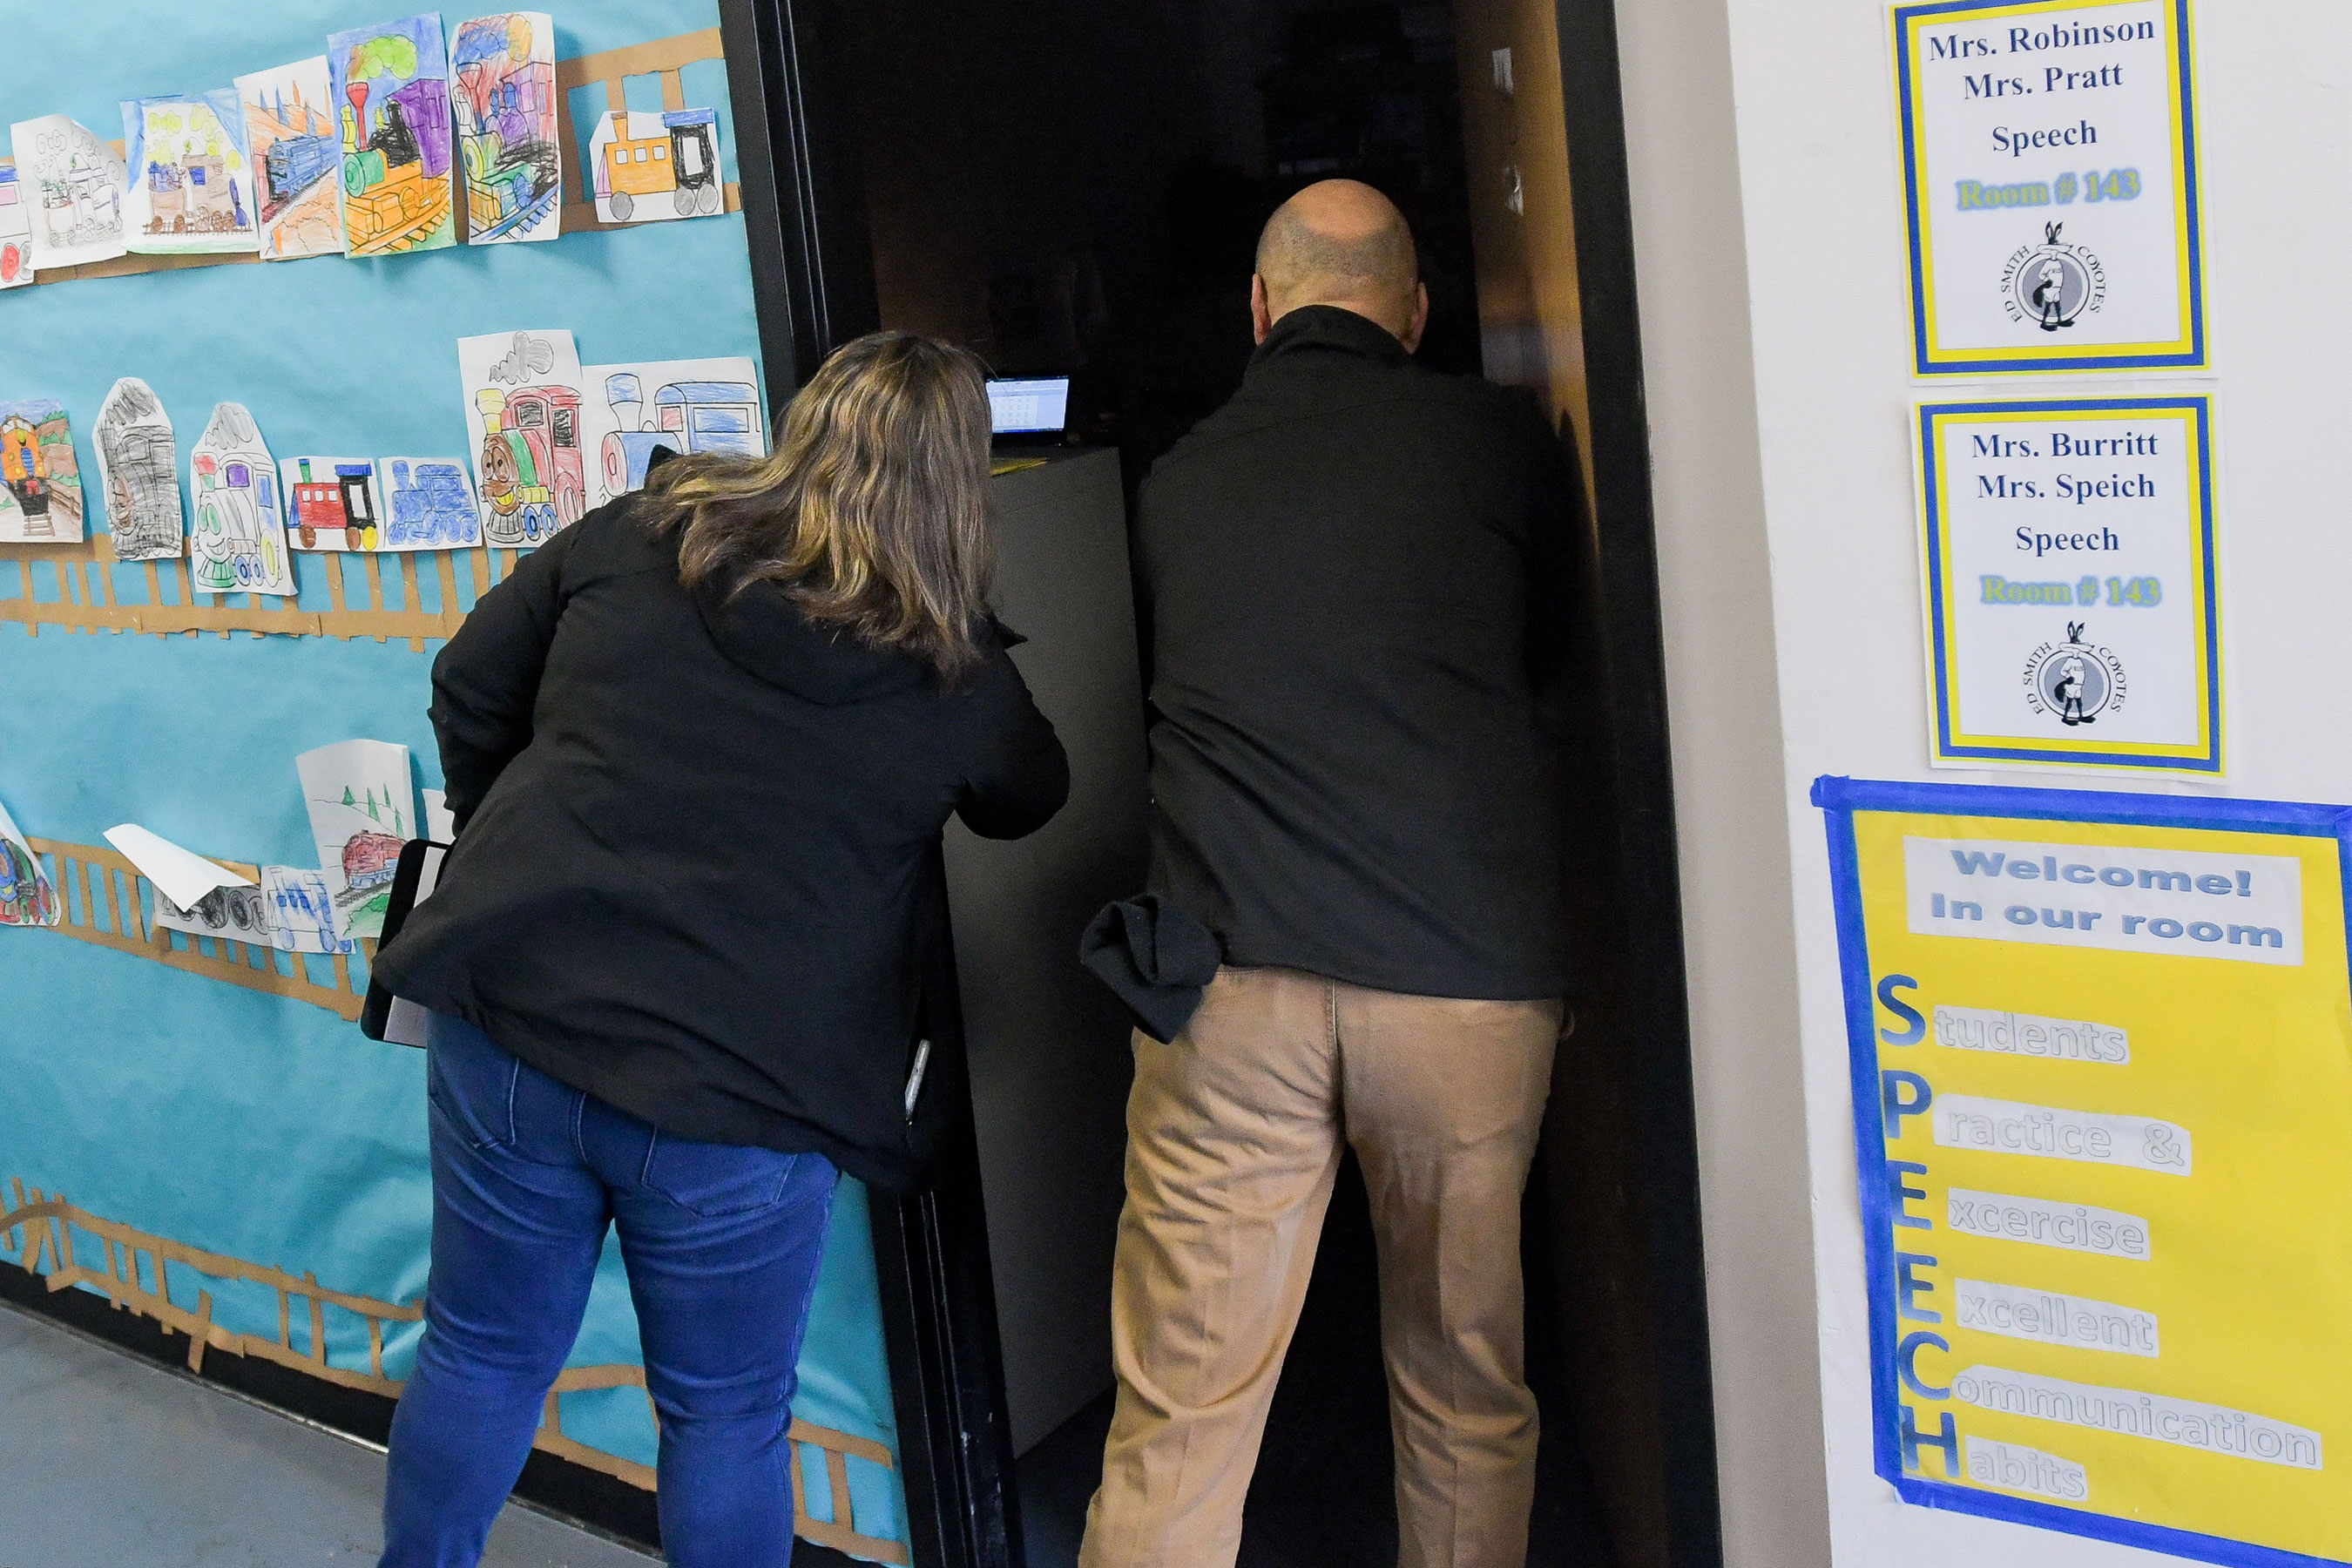 <p>Jaclyn Schildkraut checks a classroom during a lockdown drill at Ed Smith Elementary School in Syracuse, New York on Monday, March 11, 2019.</p>